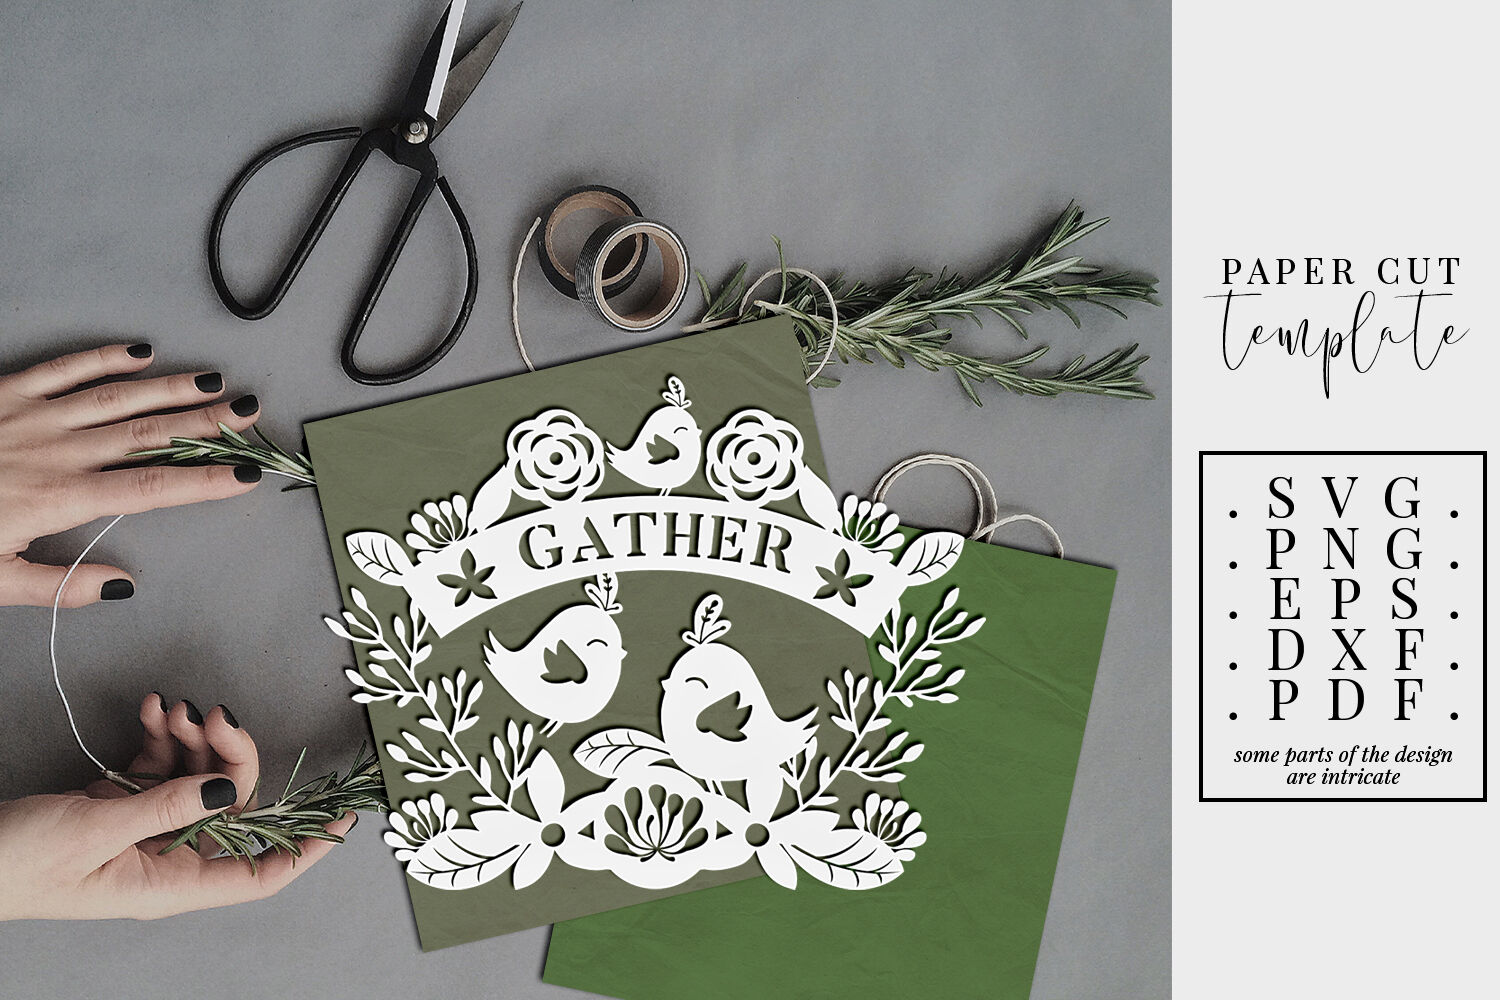 Gather Svg Cut File Autumn Papercut Template Dxf Eps Png By Personal Epiphany Thehungryjpeg Com